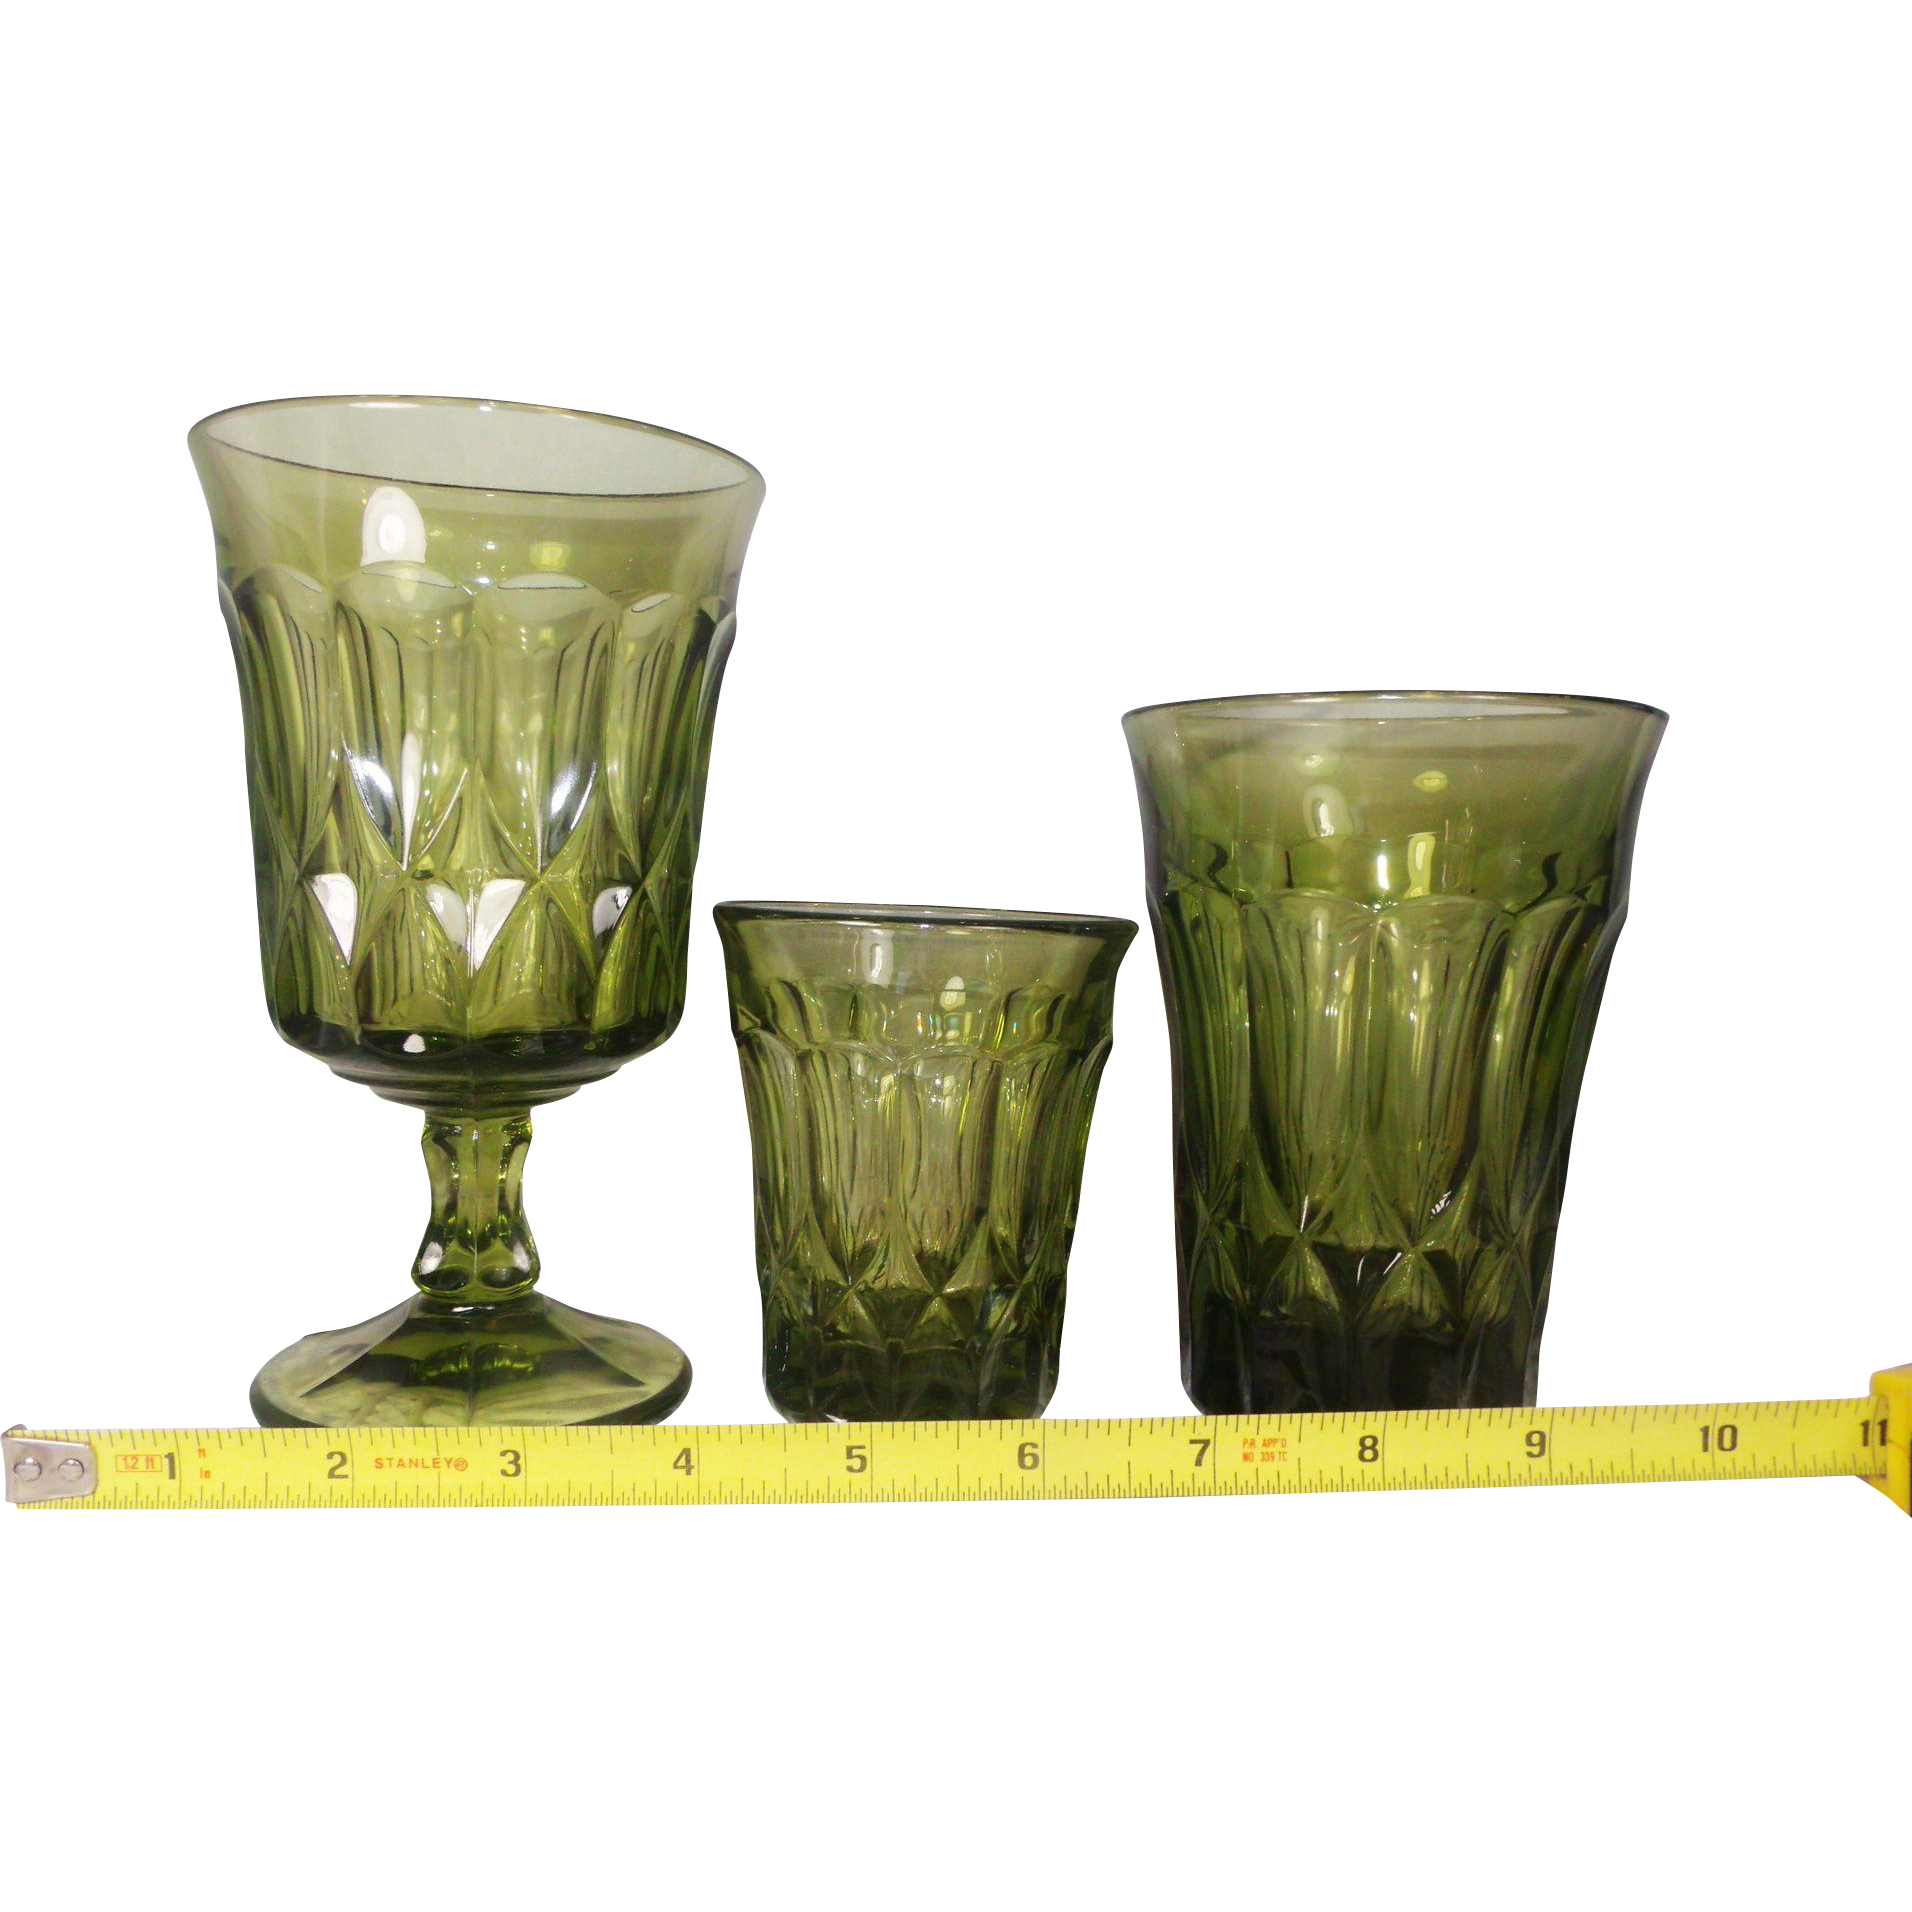 Set of 36 / 12 Each of 3 sizes Vintage NORITAKE Green Footed PERSPECTIVE Iced Tea Goblet 10 oz Flat Tumblers and Juice Glass